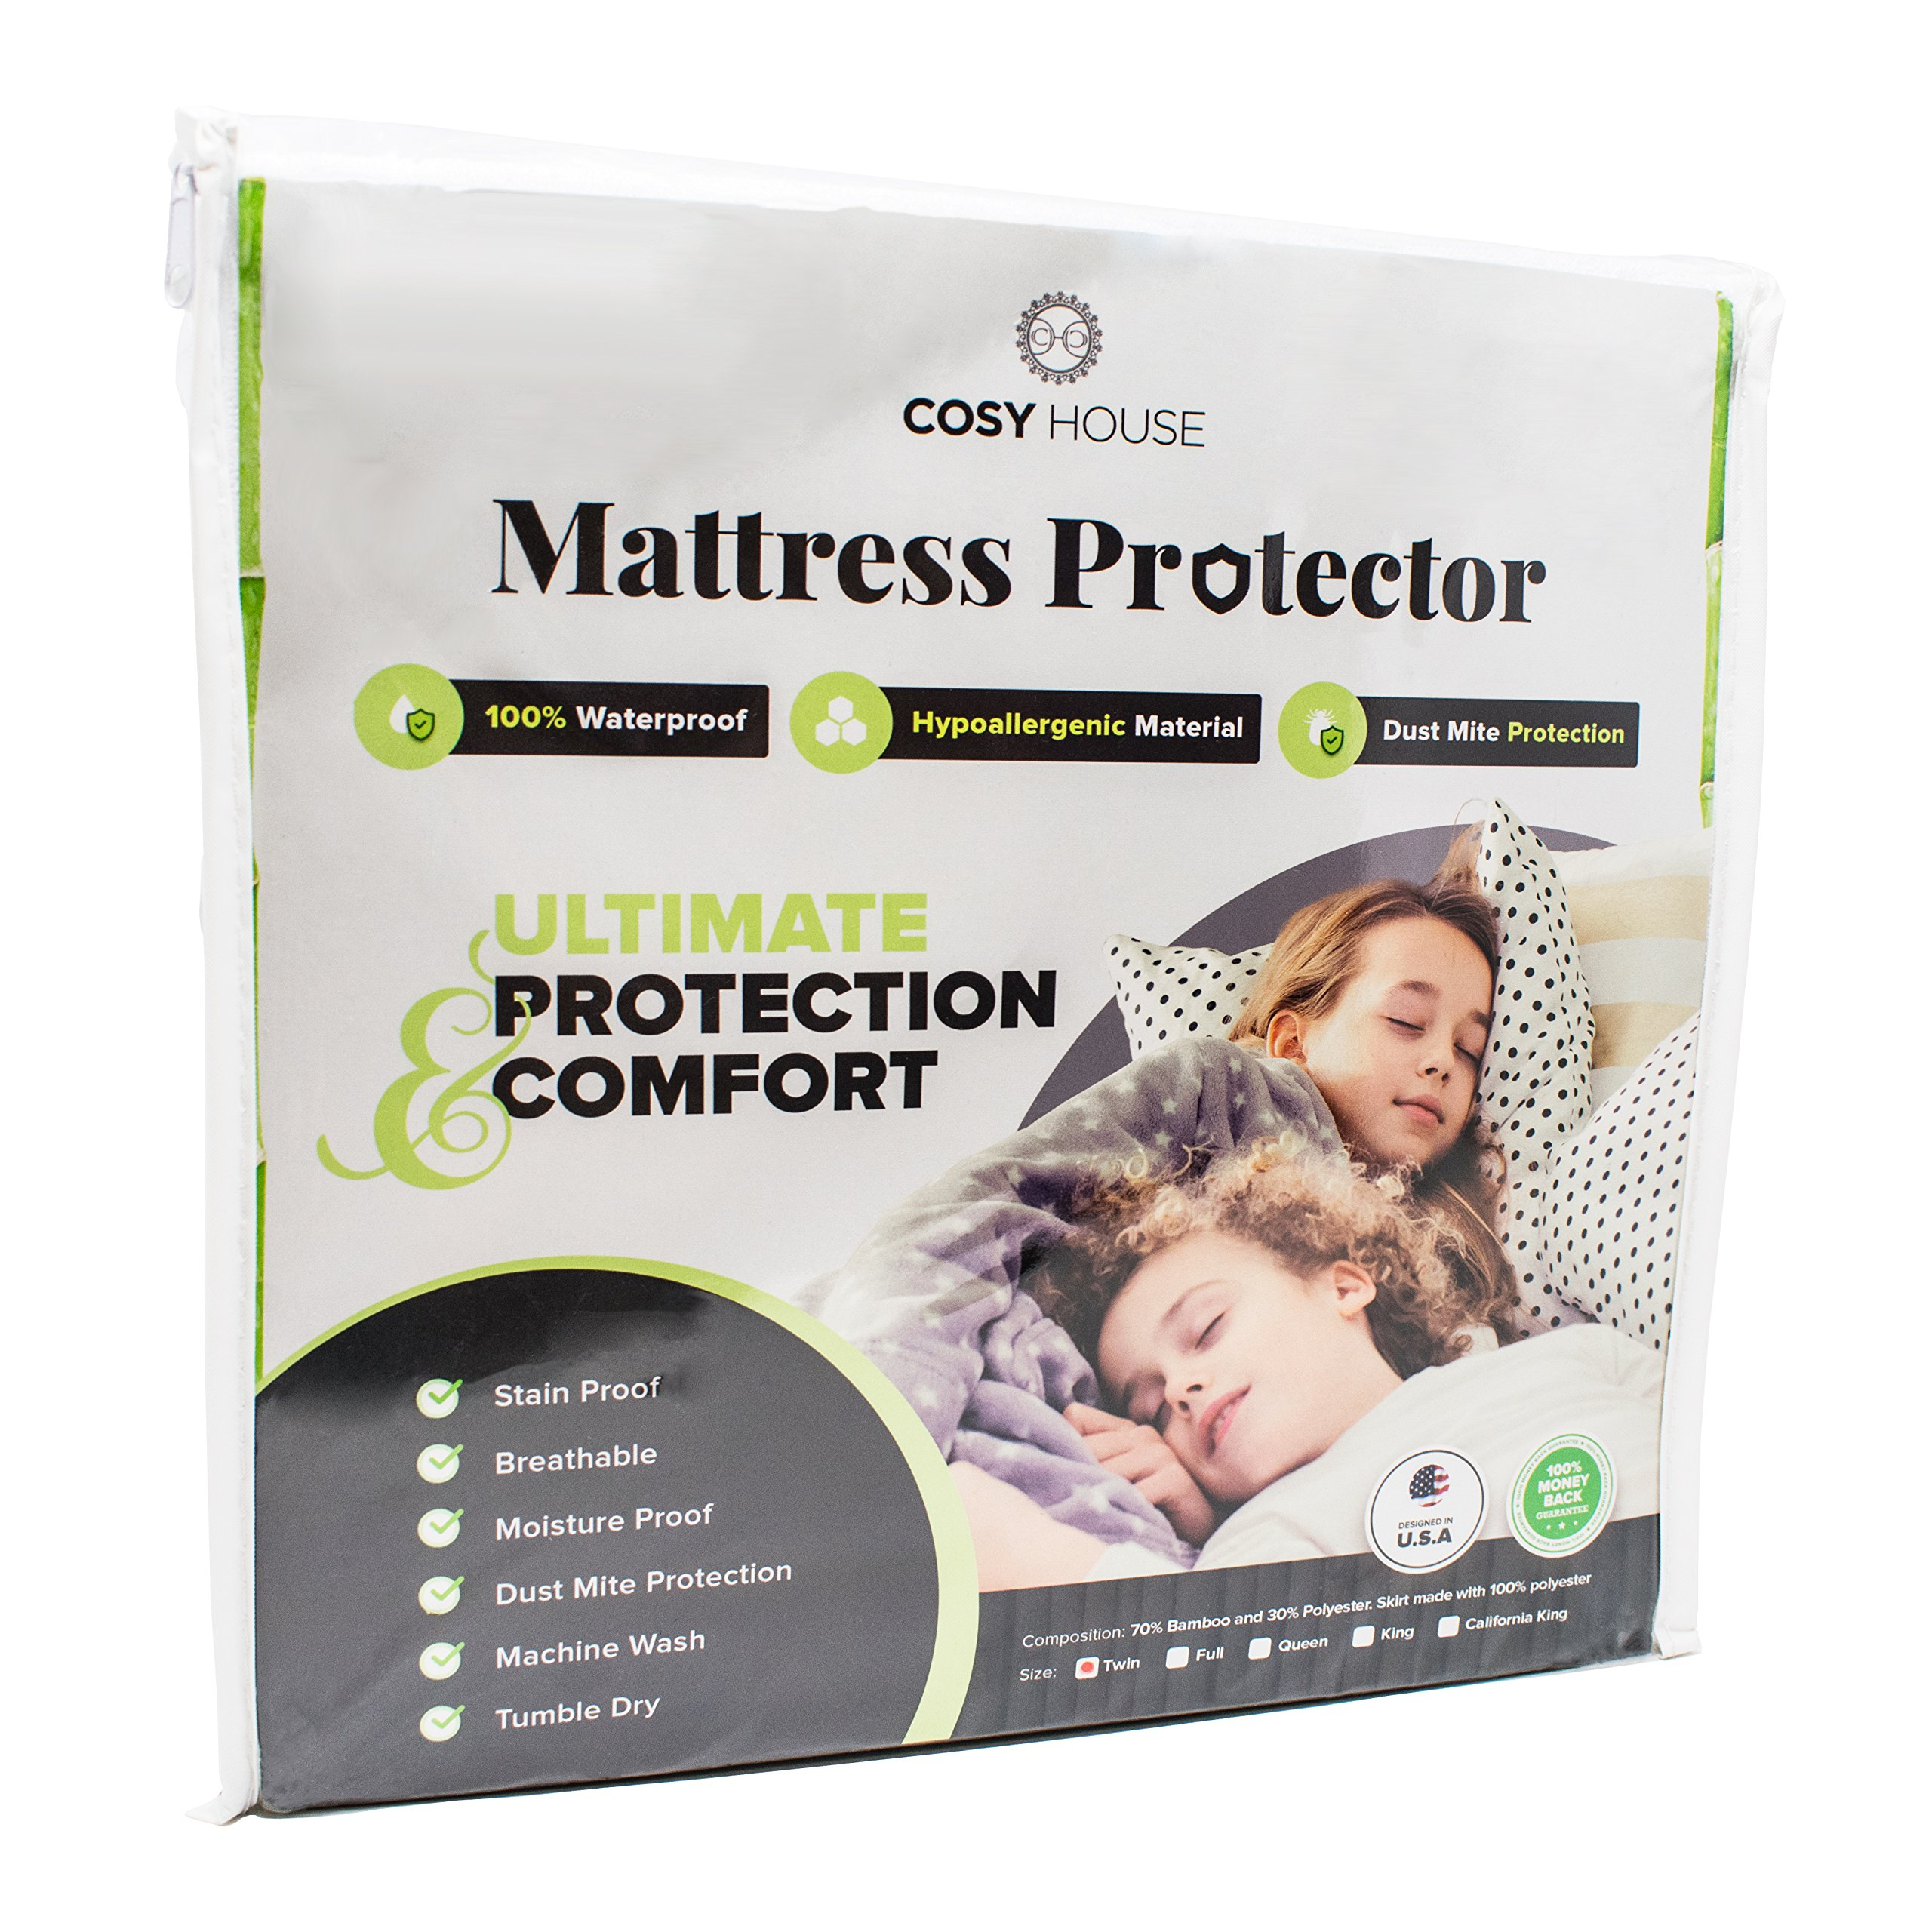 Full Size Bamboo Mattress Protector Waterproof, Hypoallergenic - Protection Against Bed Bugs, Dust Mites, Allergens, Bacteria - Perfect For Those With Kids, Allergies, Asthma, Eczema or Pets